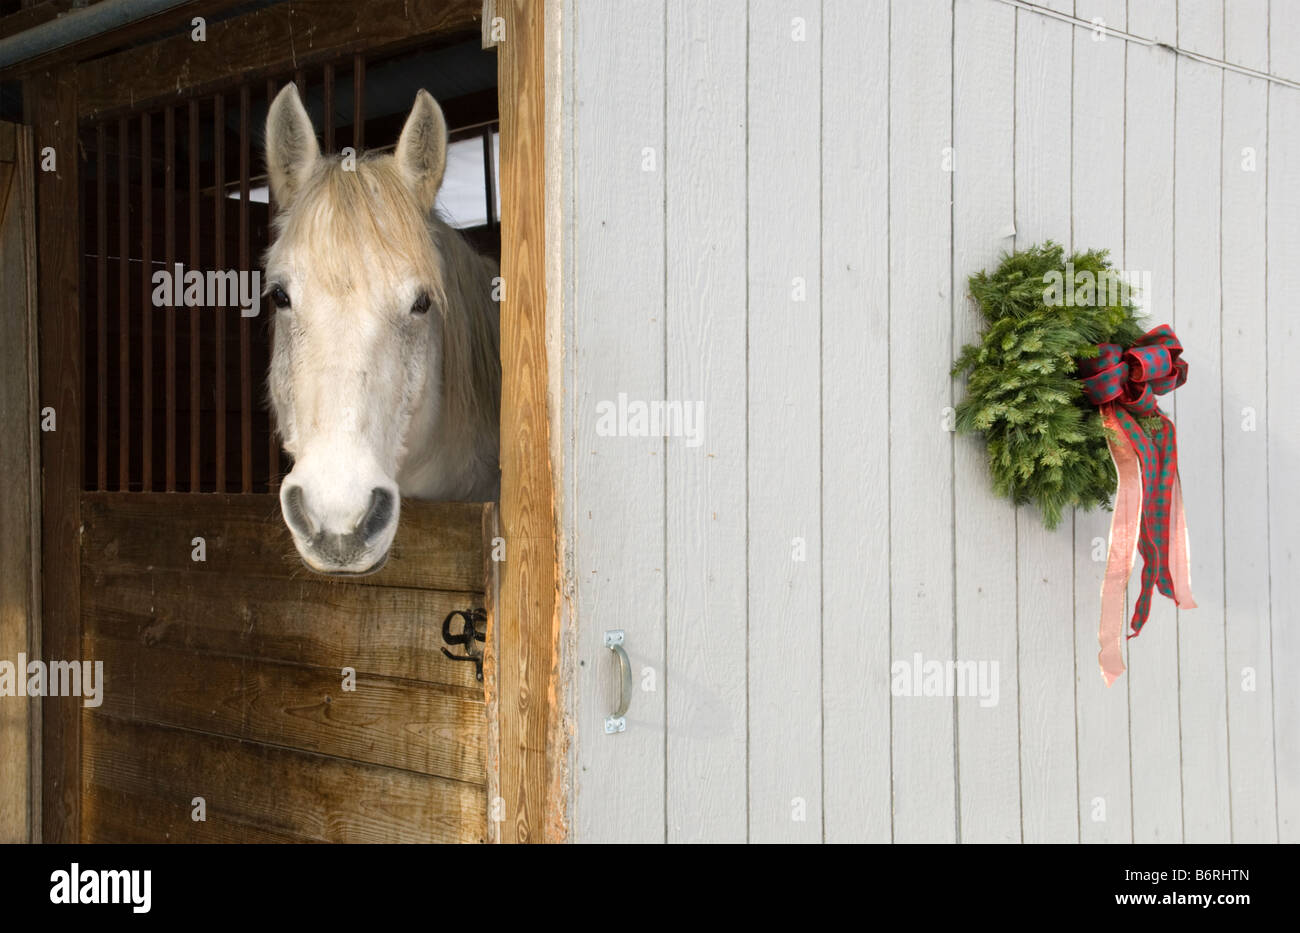 A Christmas In Vermont.A White Horse Peers Out From Its Stable At Christmas In